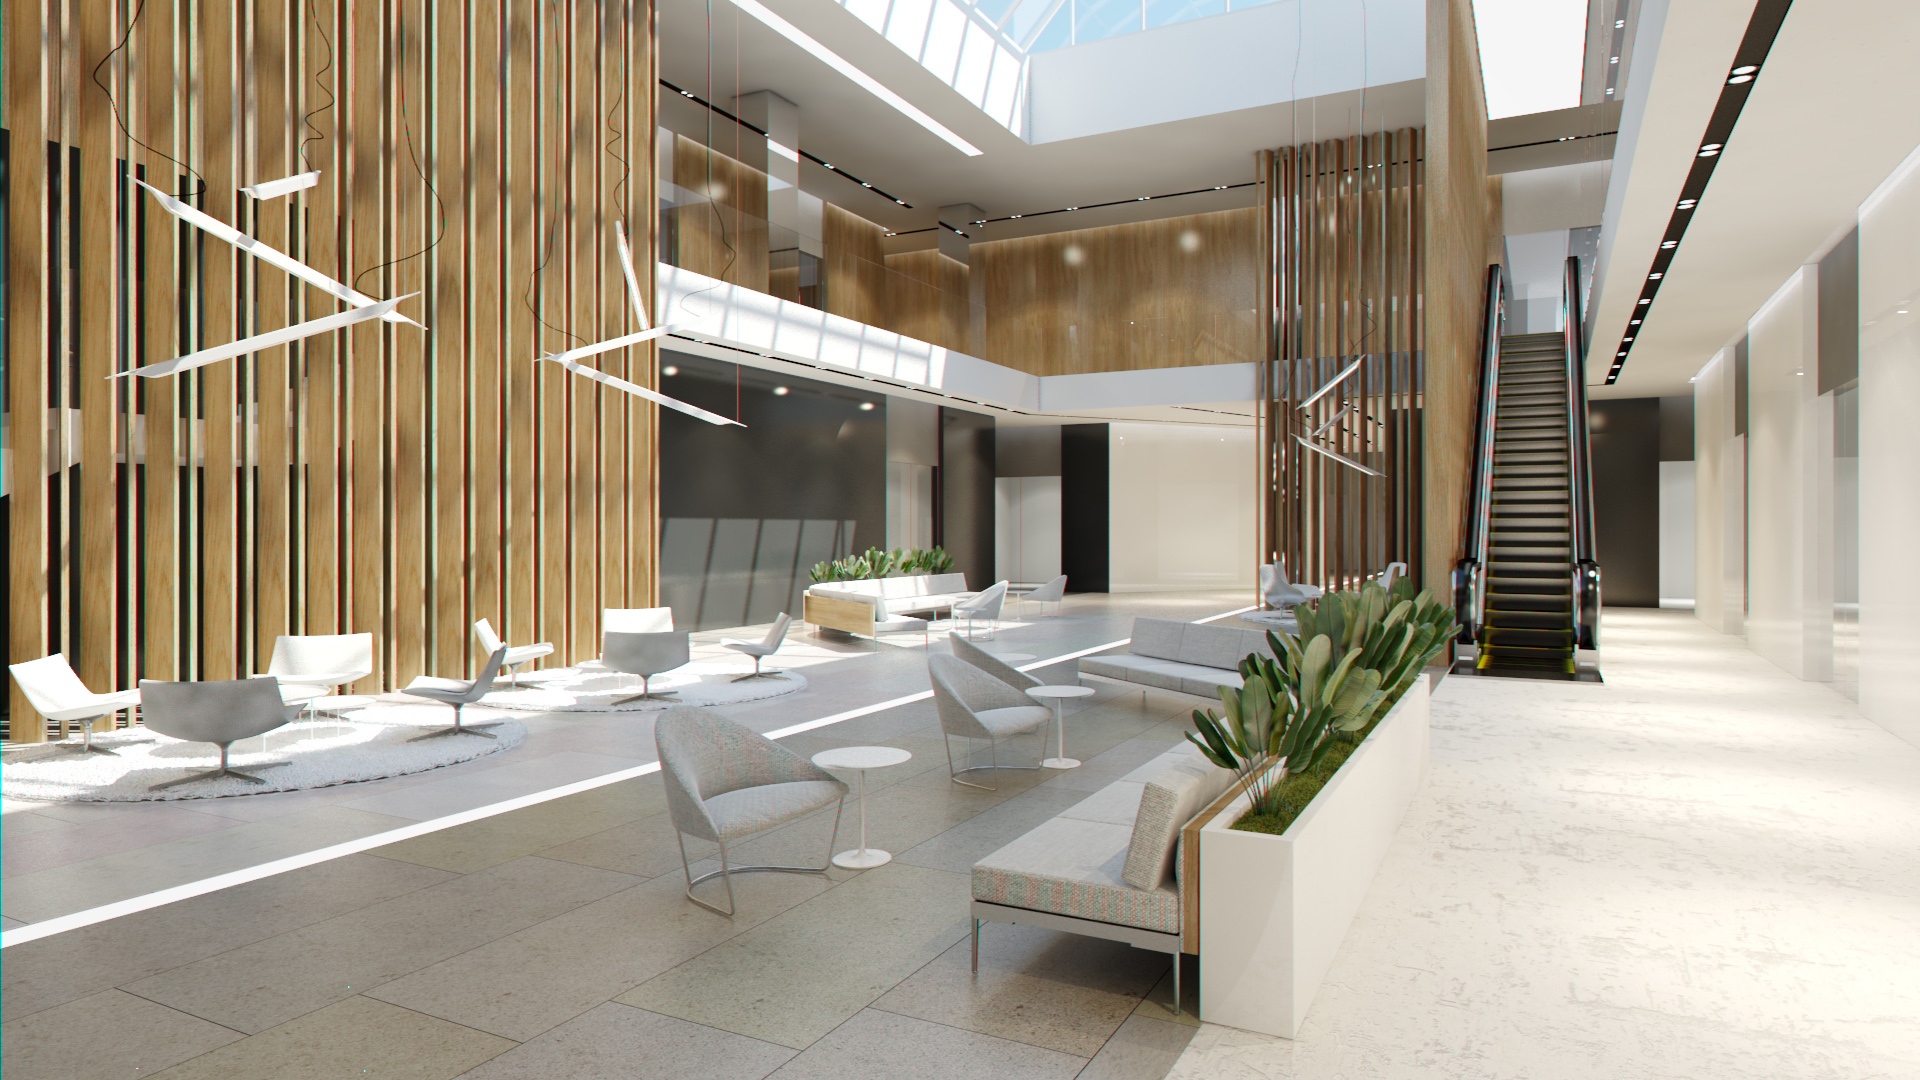 Office Foyer Design : Lobby hall foyer office commercial business scene interior